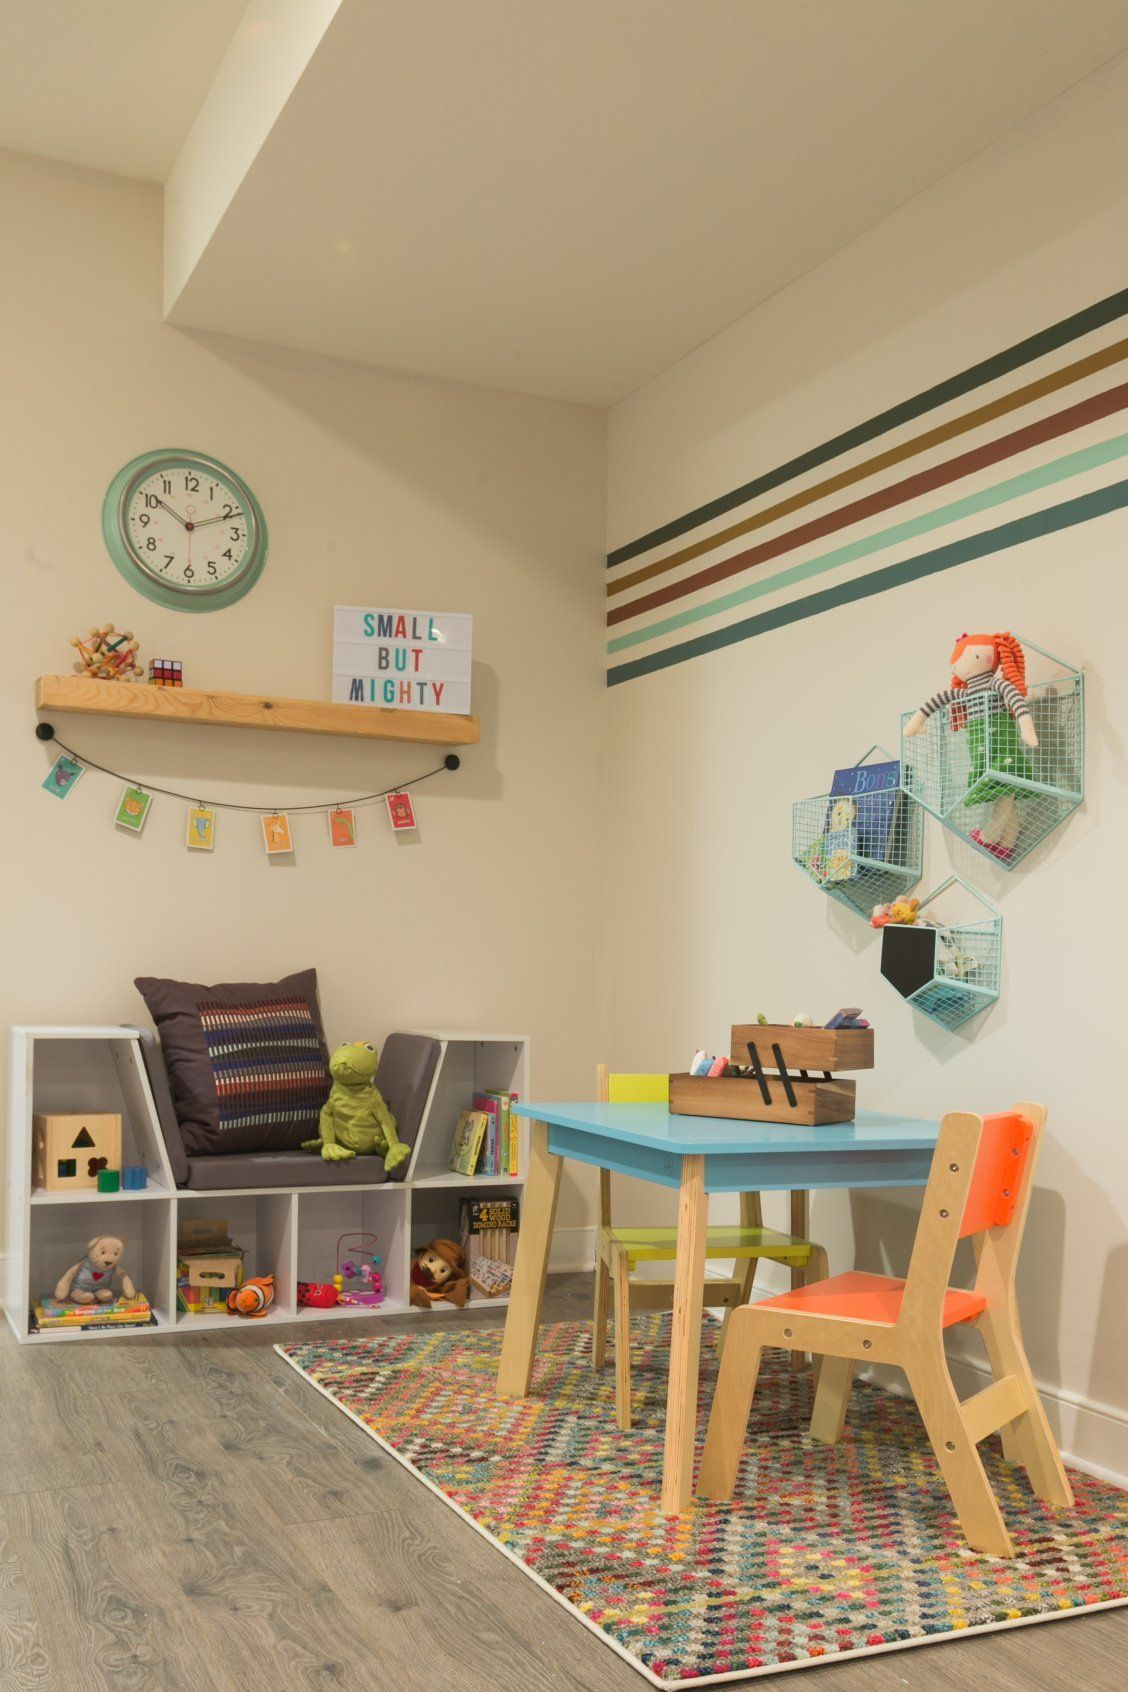 Laminate wood-look flooring is ideal for a child's playroom. Not only does this textured style look great, it's both easy to install and maintain. Watch The Weekender now for more smart DIYs!